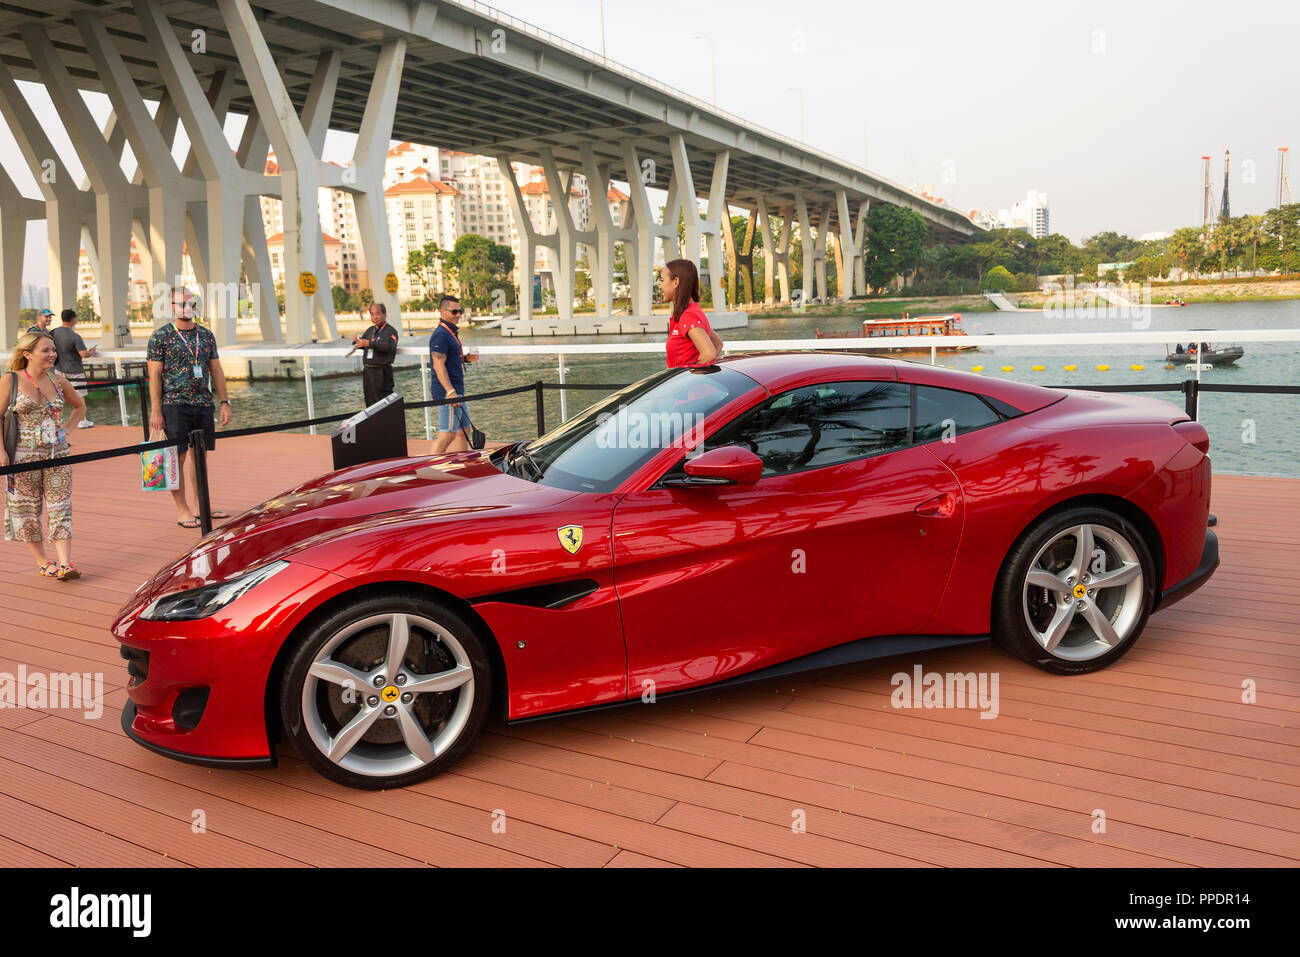 Ferrari Portofino Luxury Drop-Top Sports Car on Display with Attractive Model at F1 Grand Prix at Marina Bay Singapore Asia - Stock Image